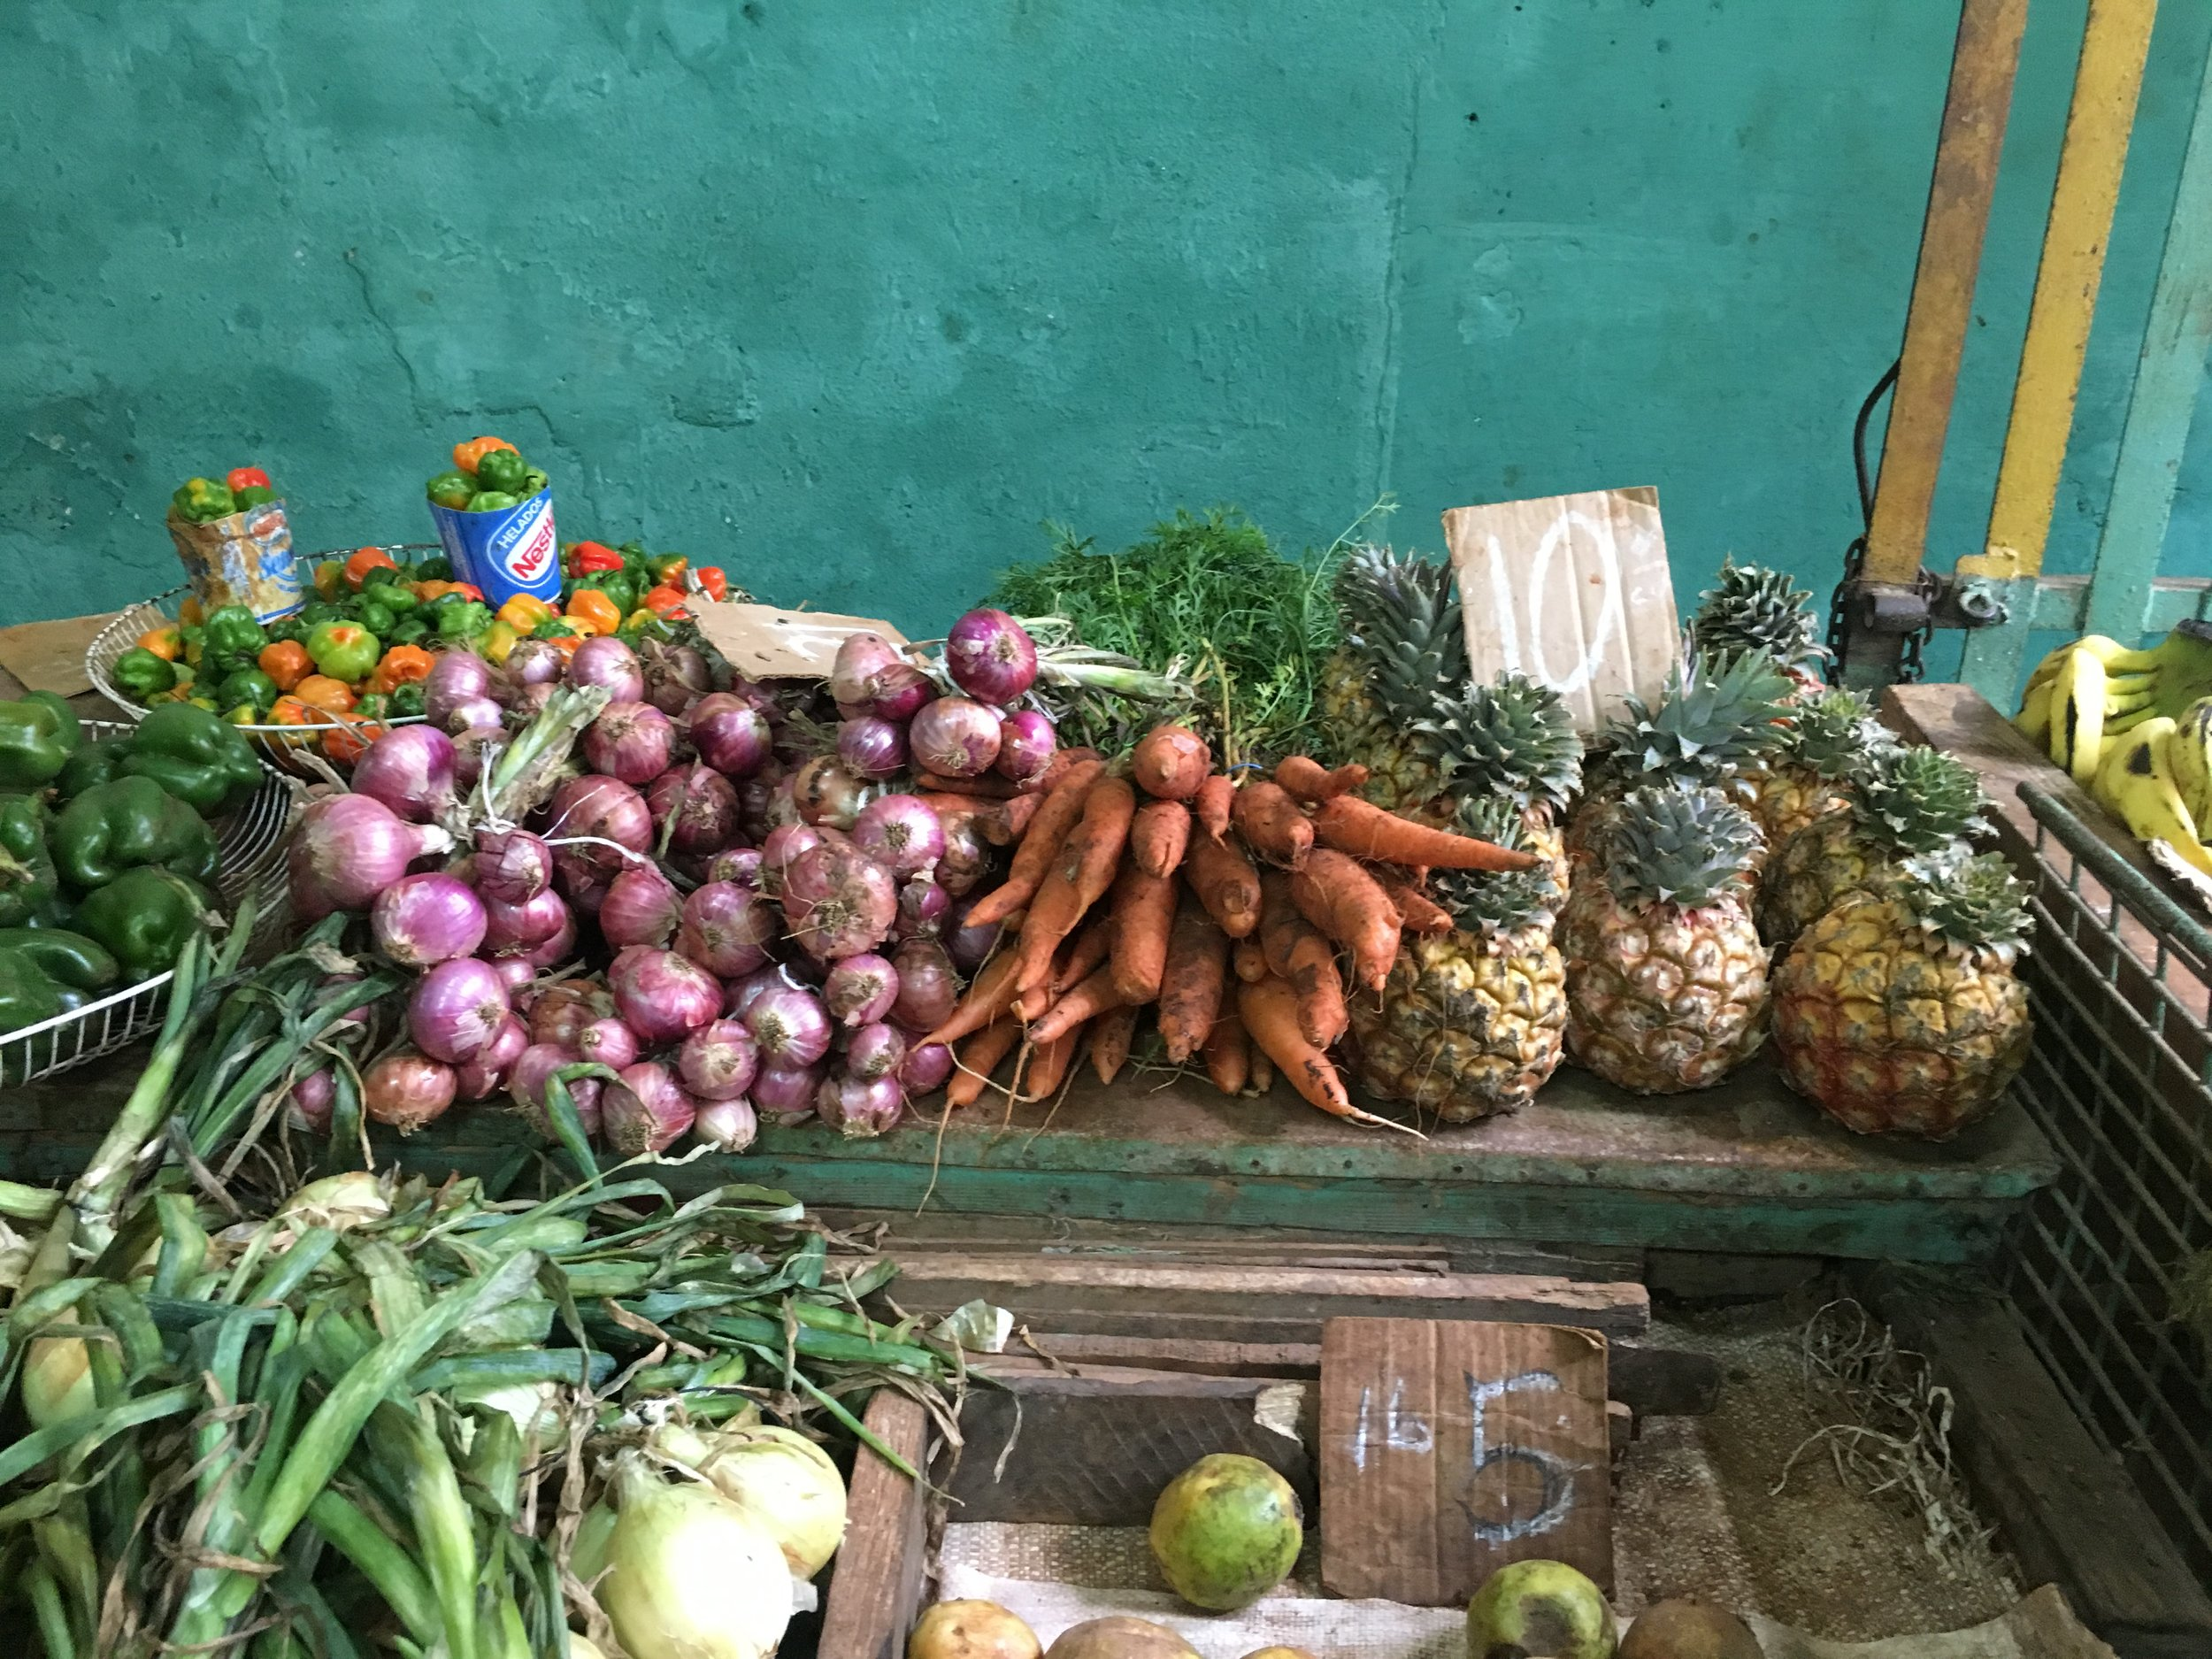 A typical veggie stand in Havana's residential neighborhoods. The carts are brought out in the morning loaded up with produce that comes in from farms located on the outskirts of the city.